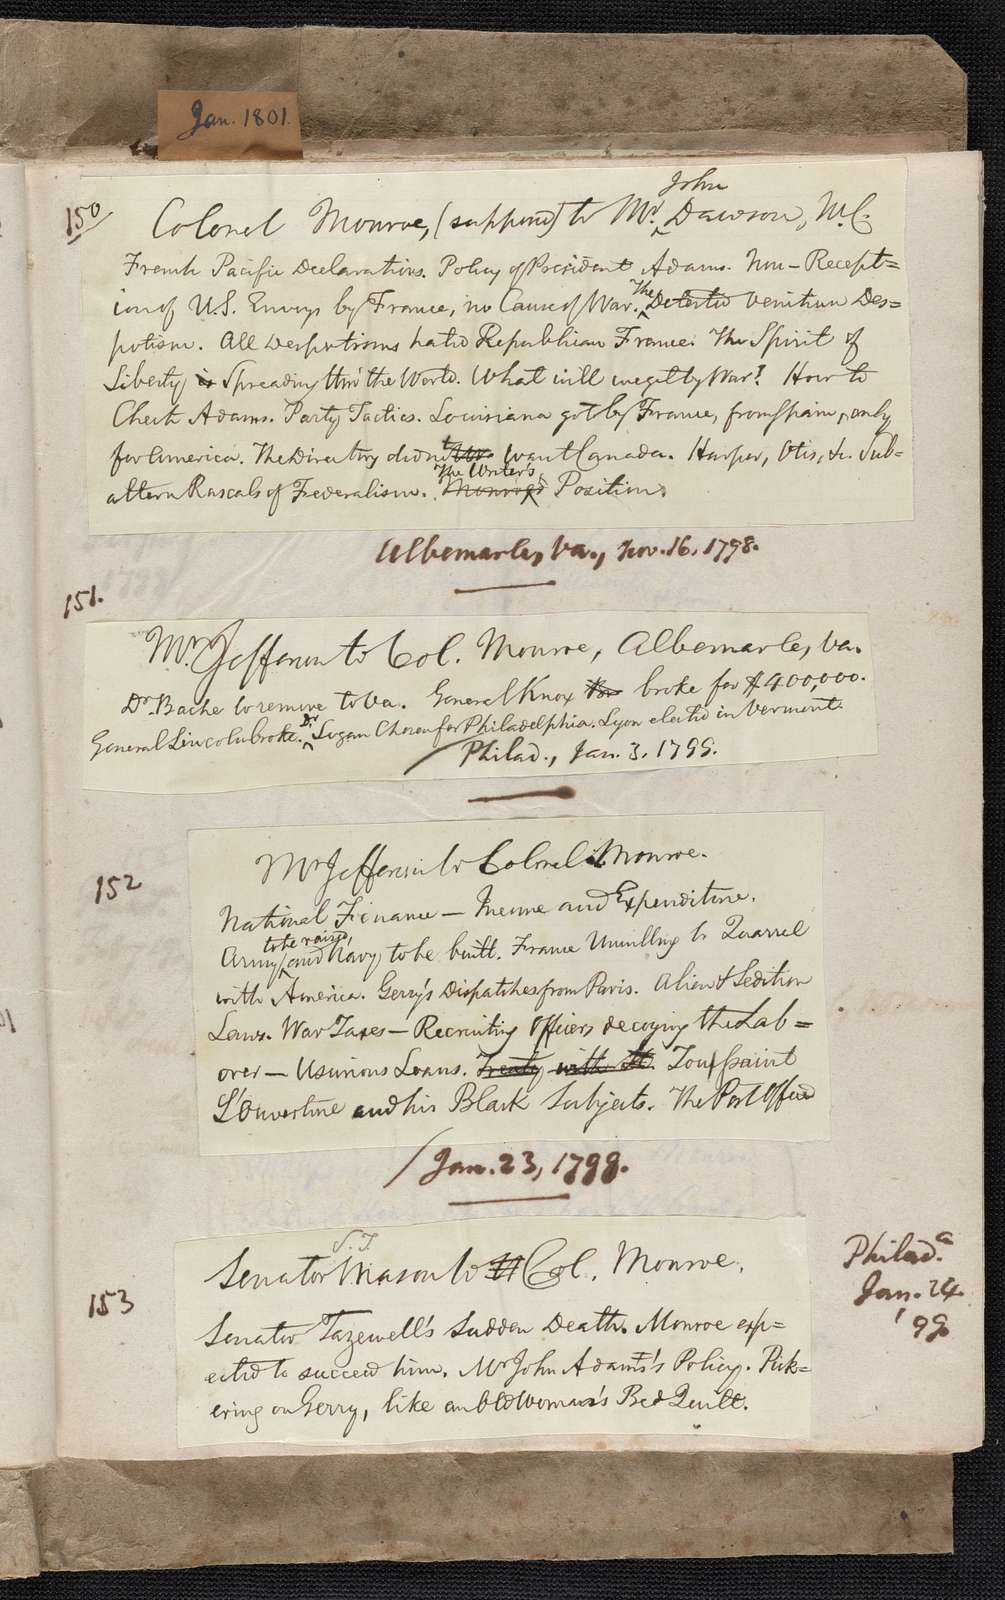 James Monroe Papers: Series 4, Addenda, 1778-1831; 1979-1985 additions; Part D, miscellany; Holograph notes listing correspondence, 1780-1814